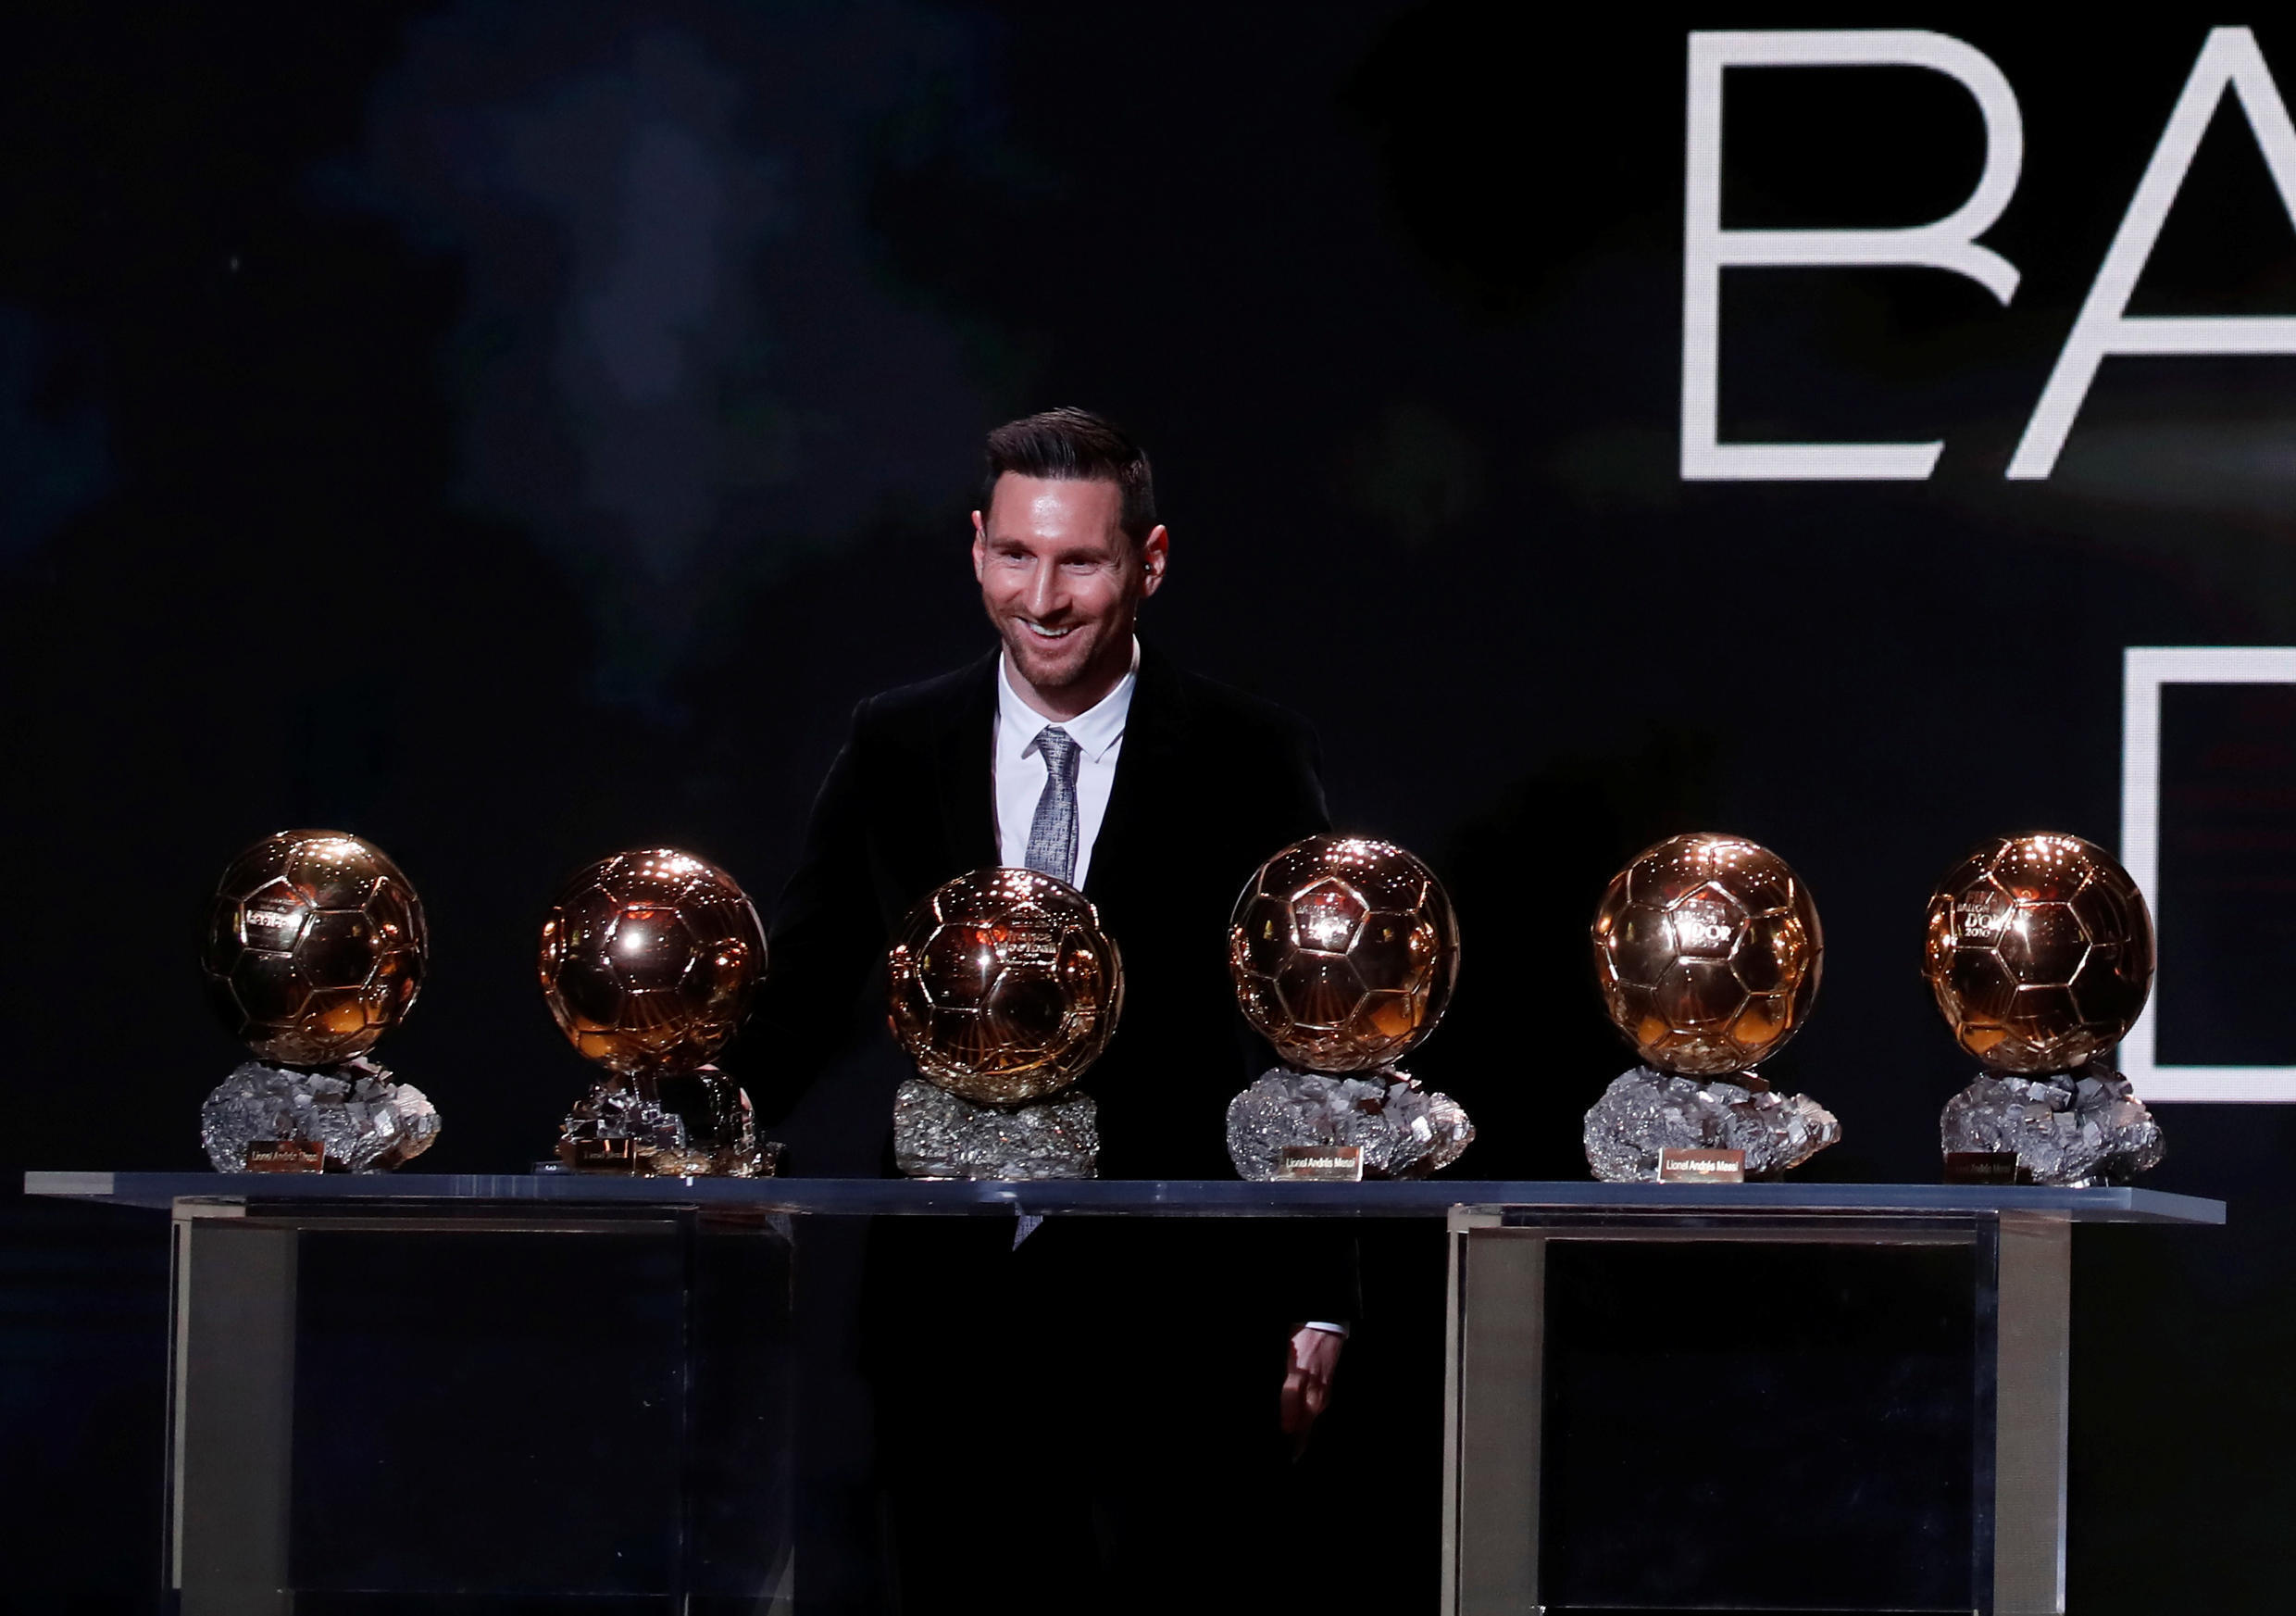 Lionel Messi won a record sixth Ballon d'Or for his feats on football fields in 2019.